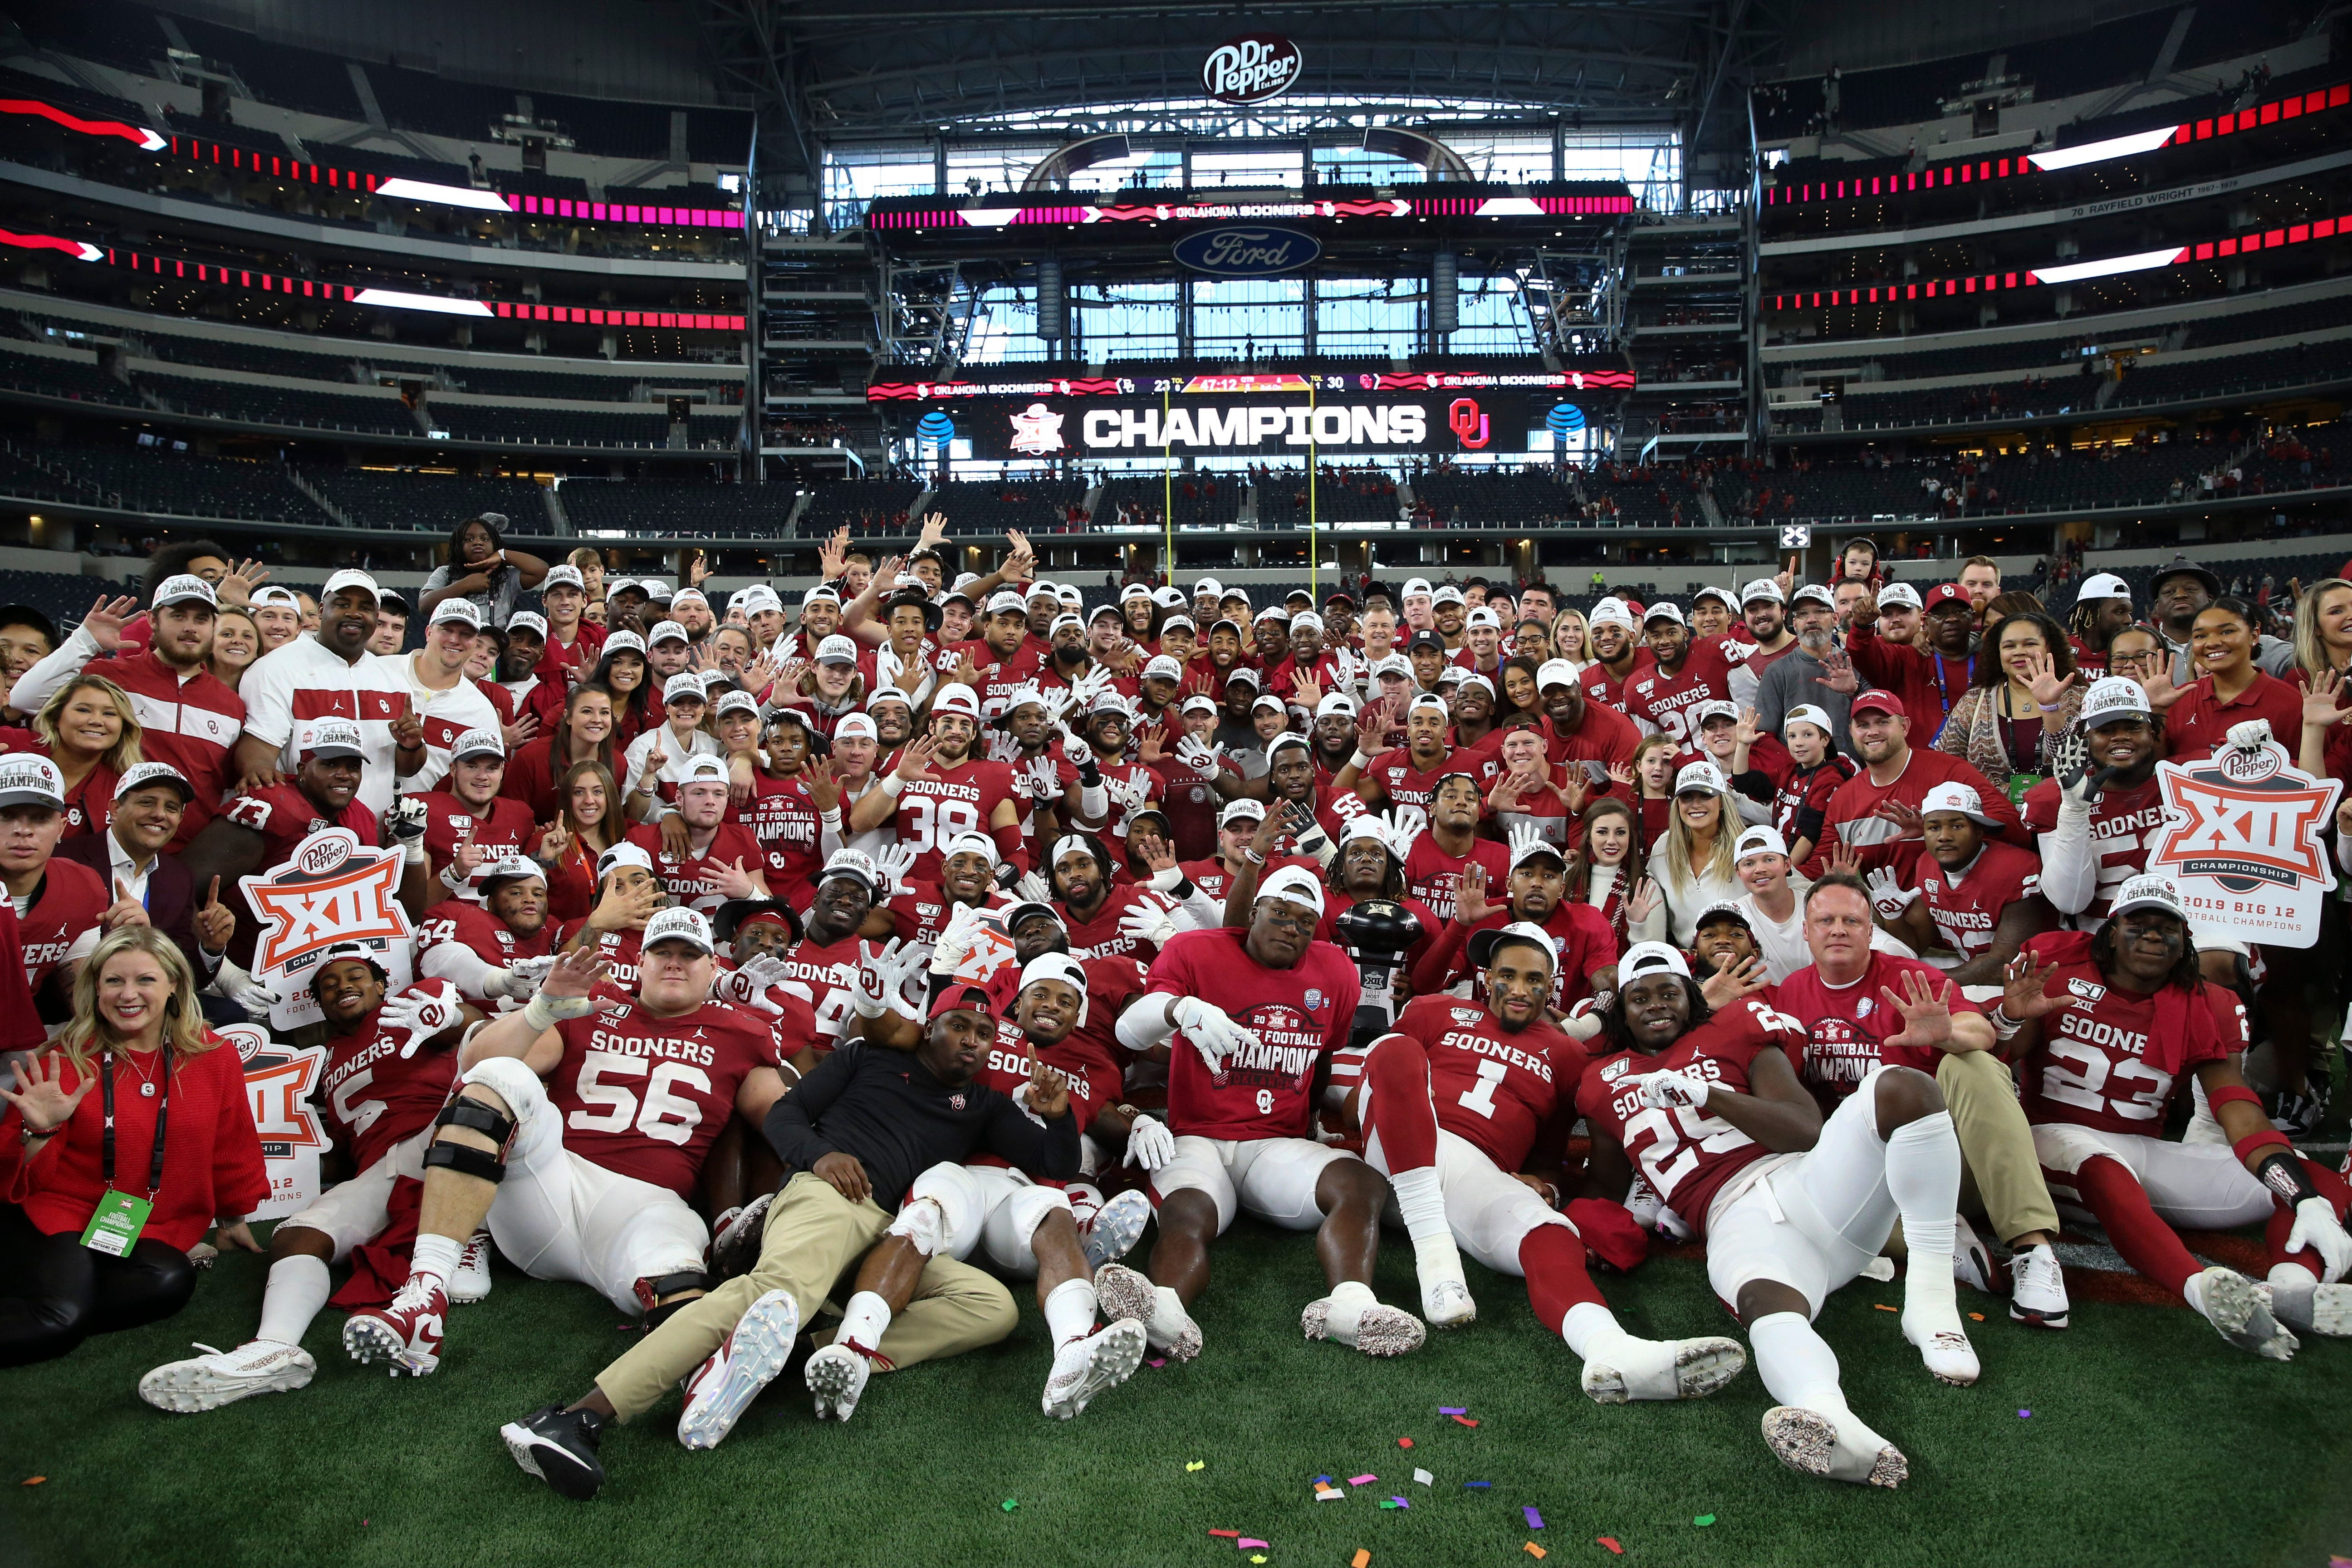 Winners and losers from Week 15 in college football led by Oklahoma, LSU and Georgia